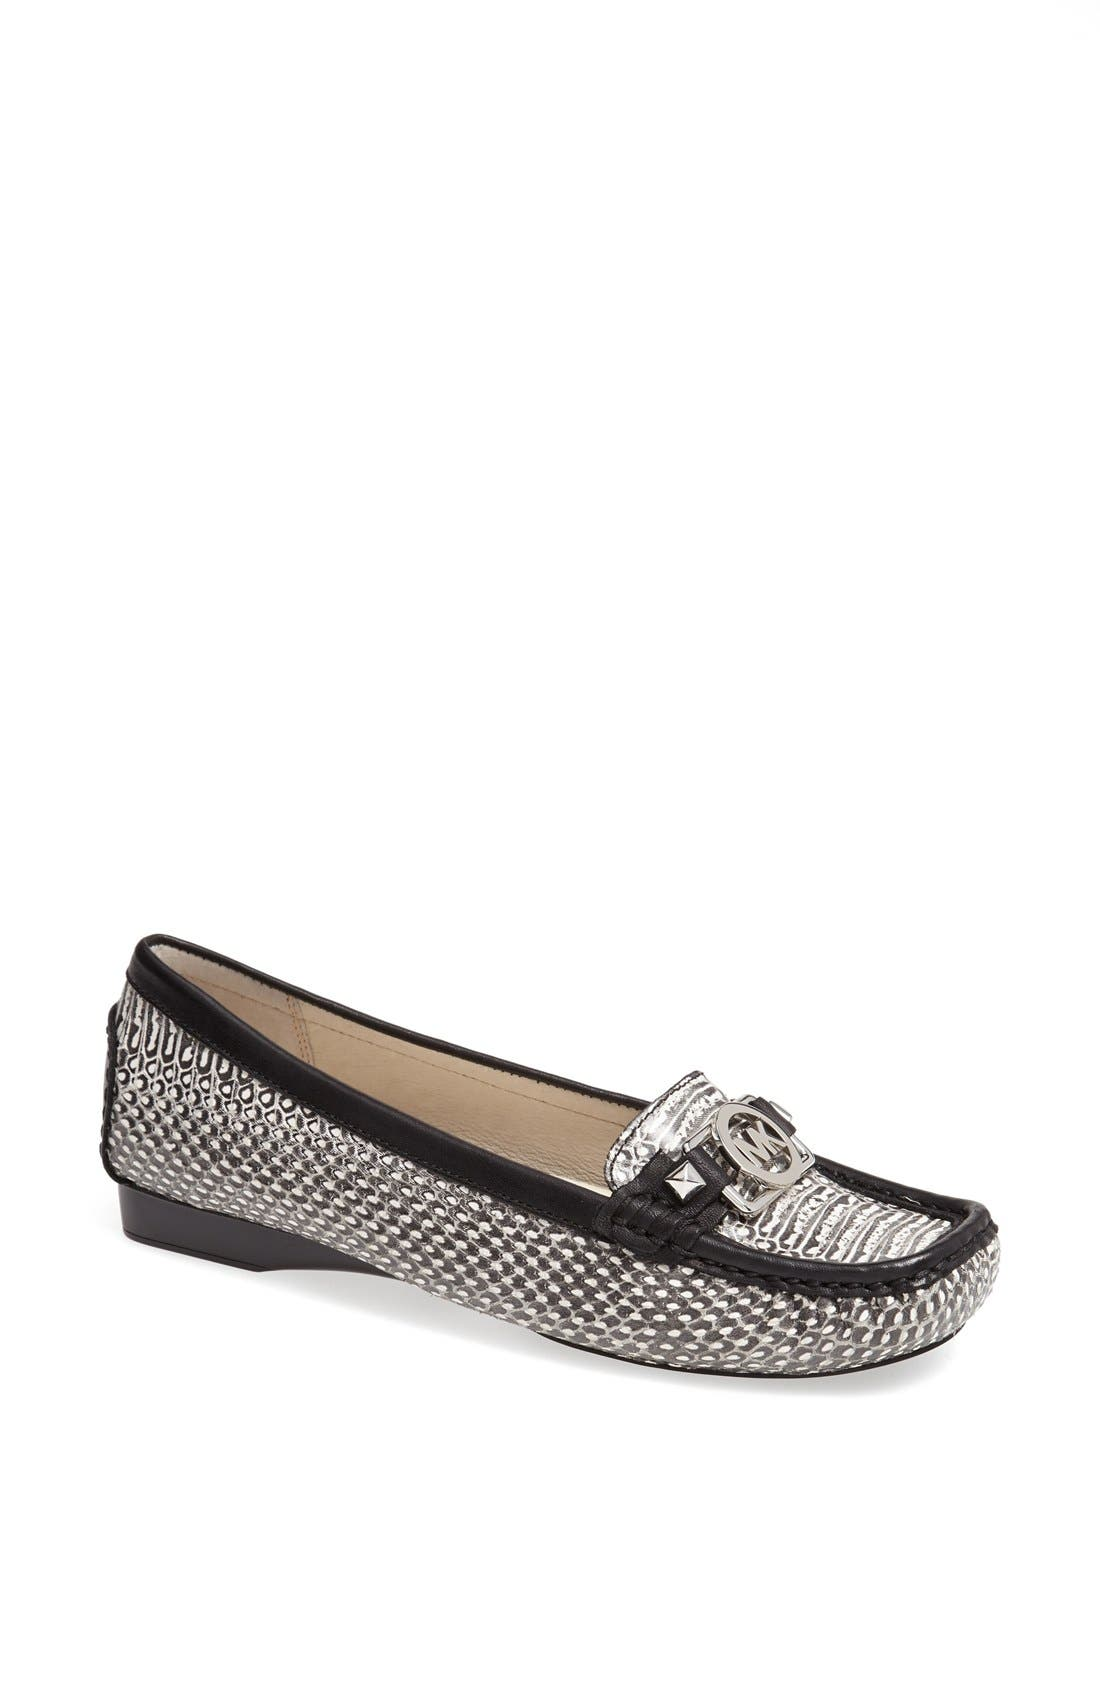 Main Image - MICHAEL Michael Kors 'Charm' Snake Embossed Leather Flat